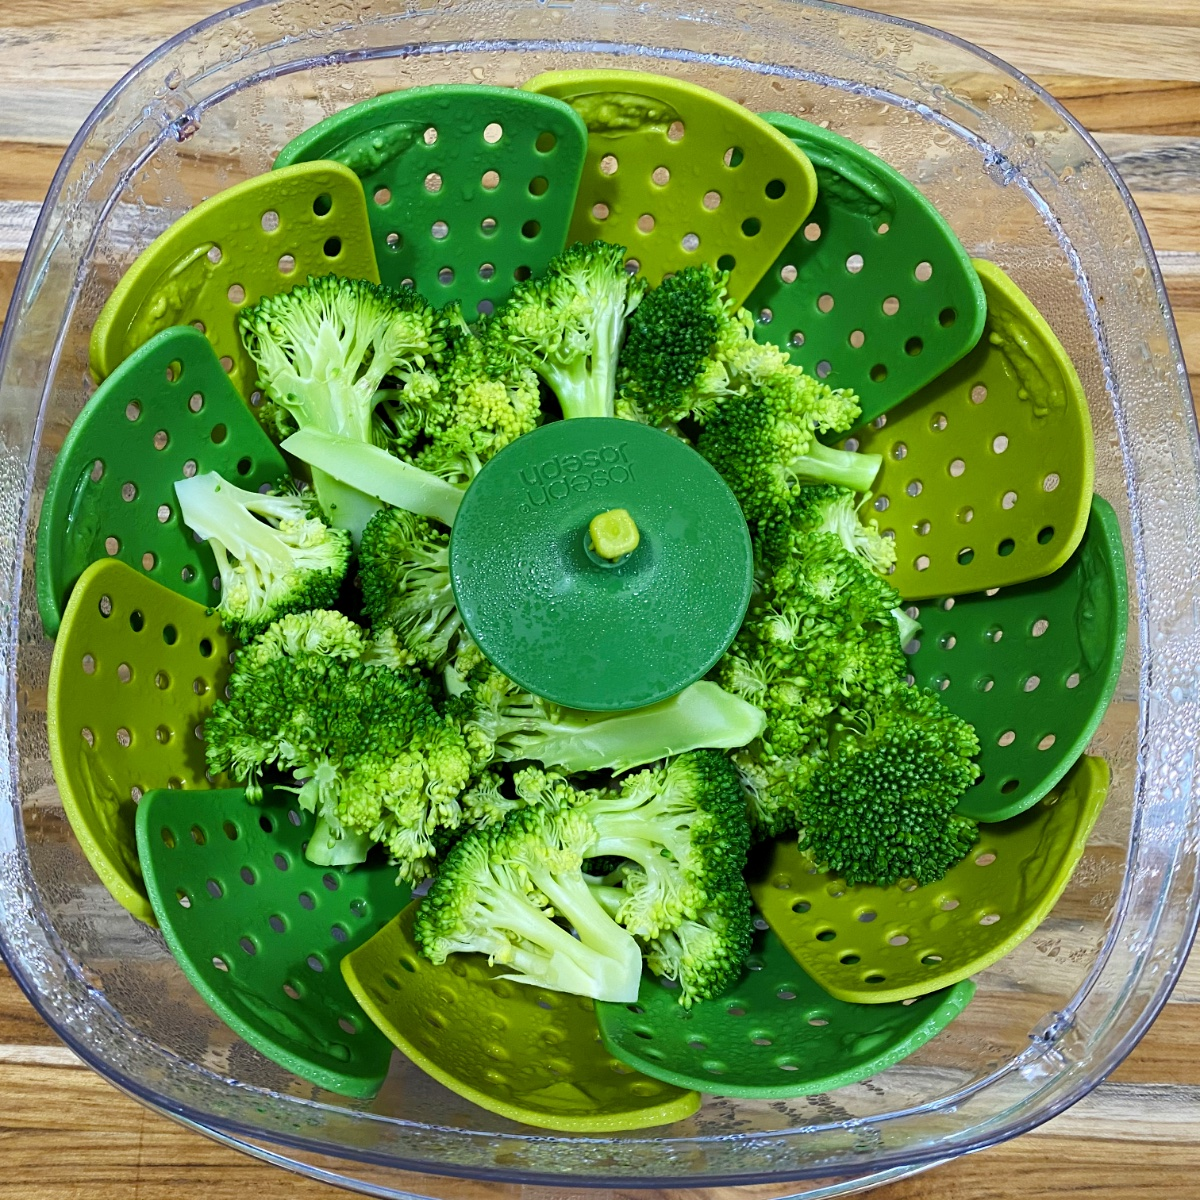 Microwave Broccoli in the colander after being microwaved about 3 minutes. The color is beautiful, vibrant green and the broccoli is perfectly crisp-tender.